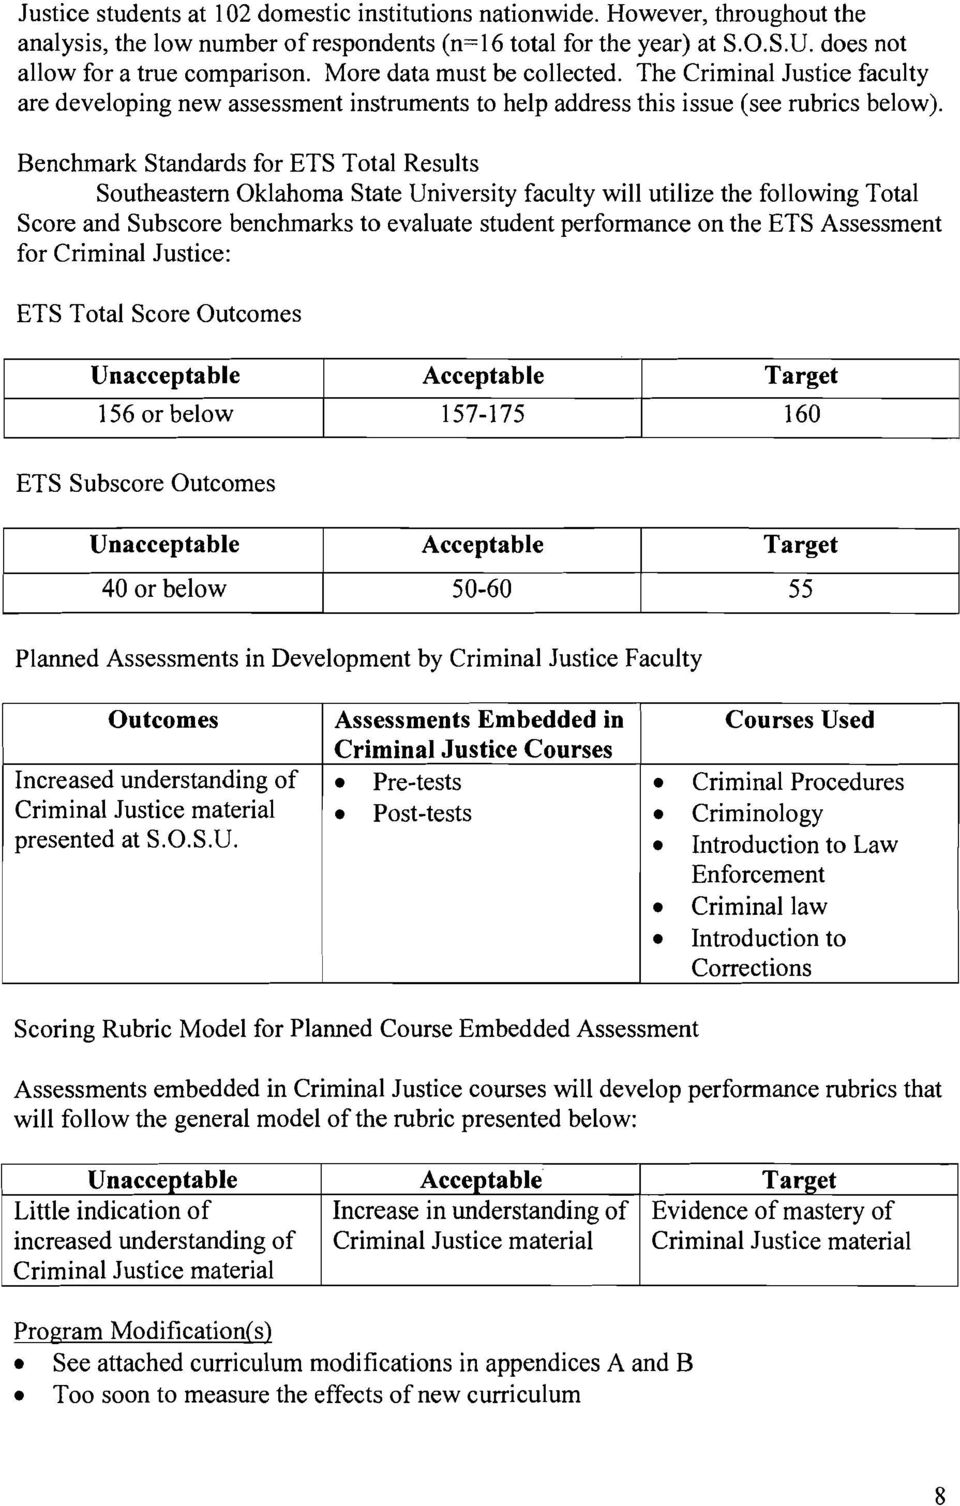 Benchmark Standards for ETS Total Results Southeastern Oklahoma State University faculty will utilize the following Total Score and Subscore benchmarks to evaluate student performance on the ETS